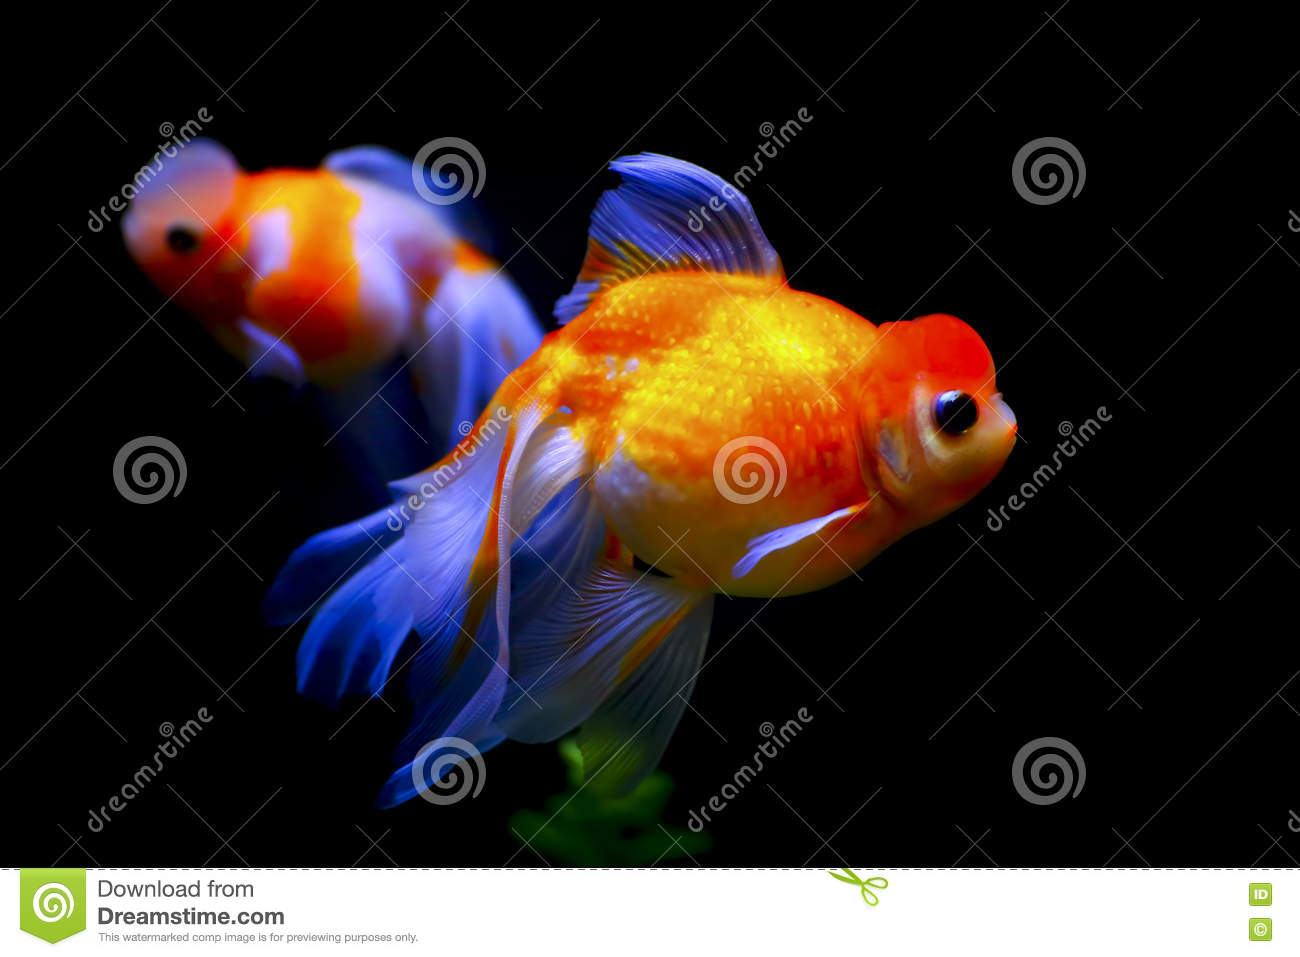 Marble phoenix egg fish stock image  Image of pets, tropical